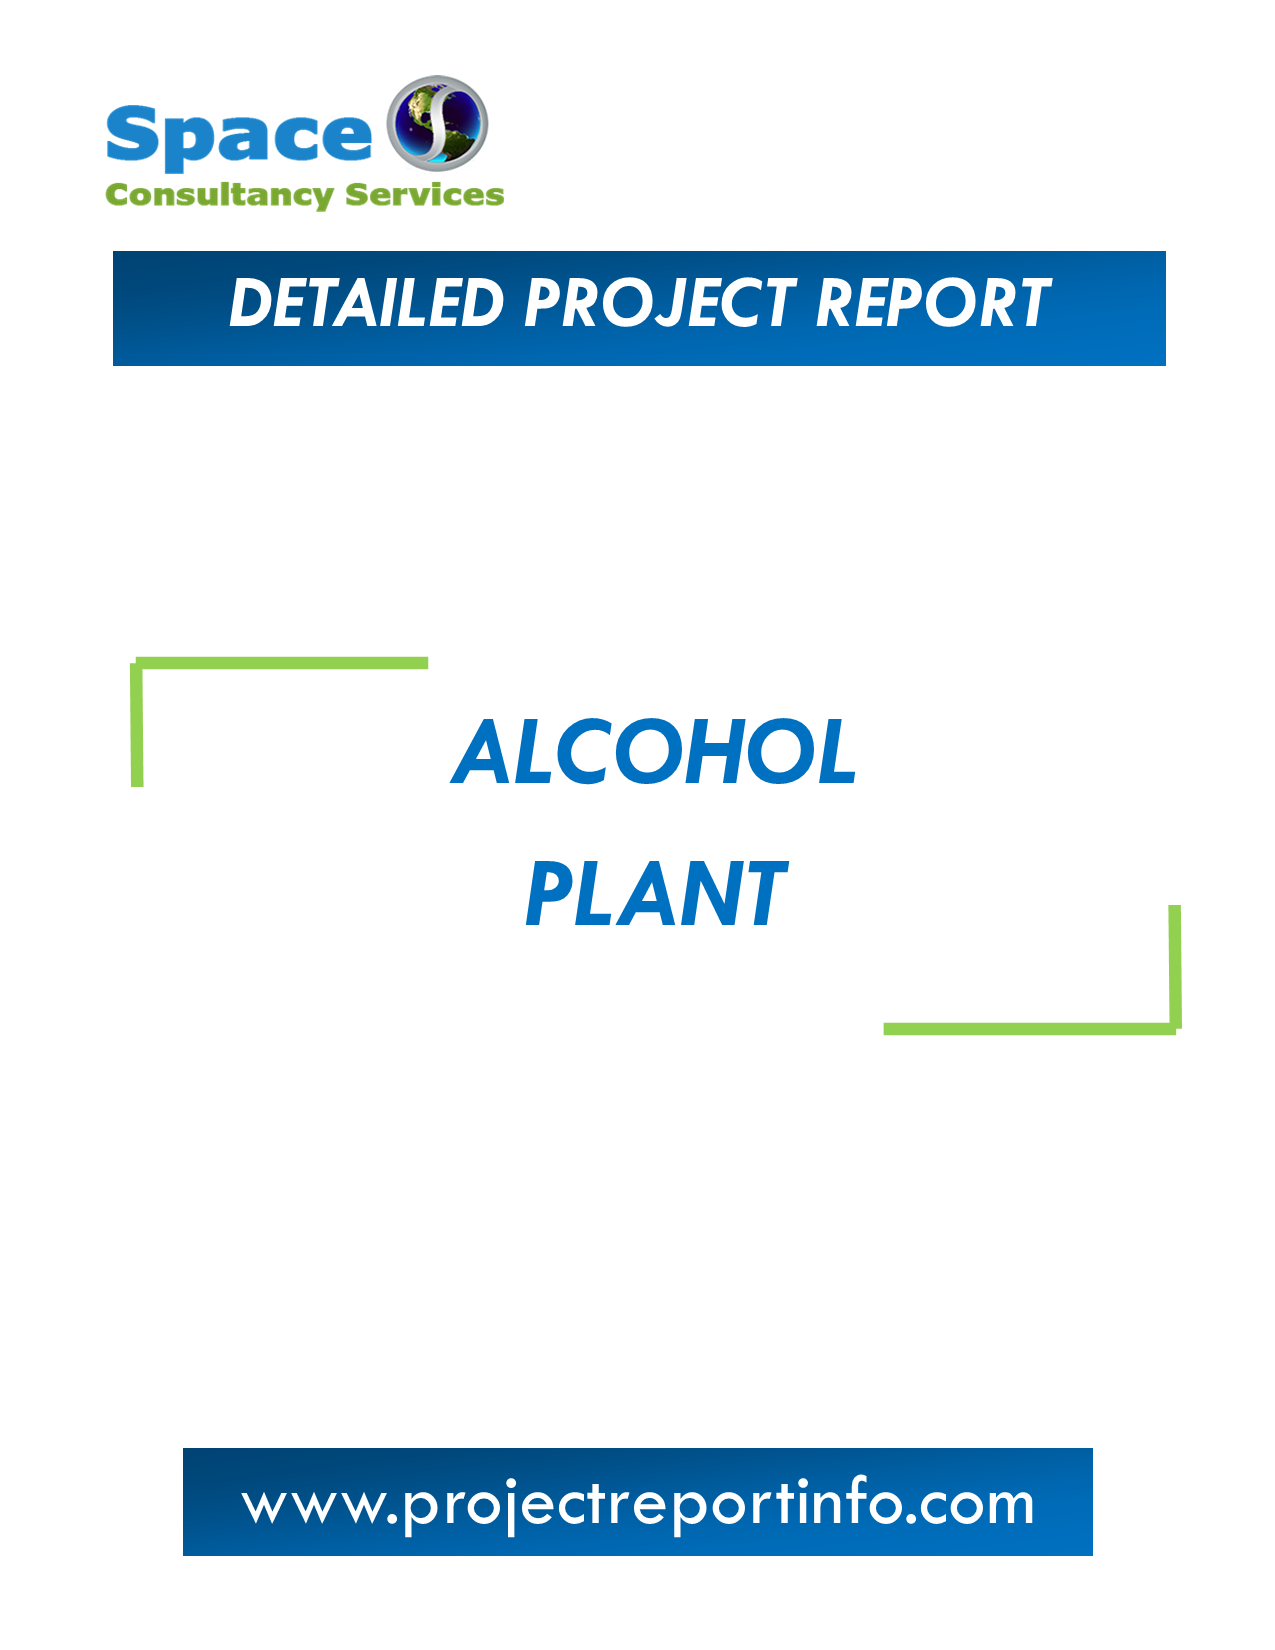 Project Report on Alcohol Plant